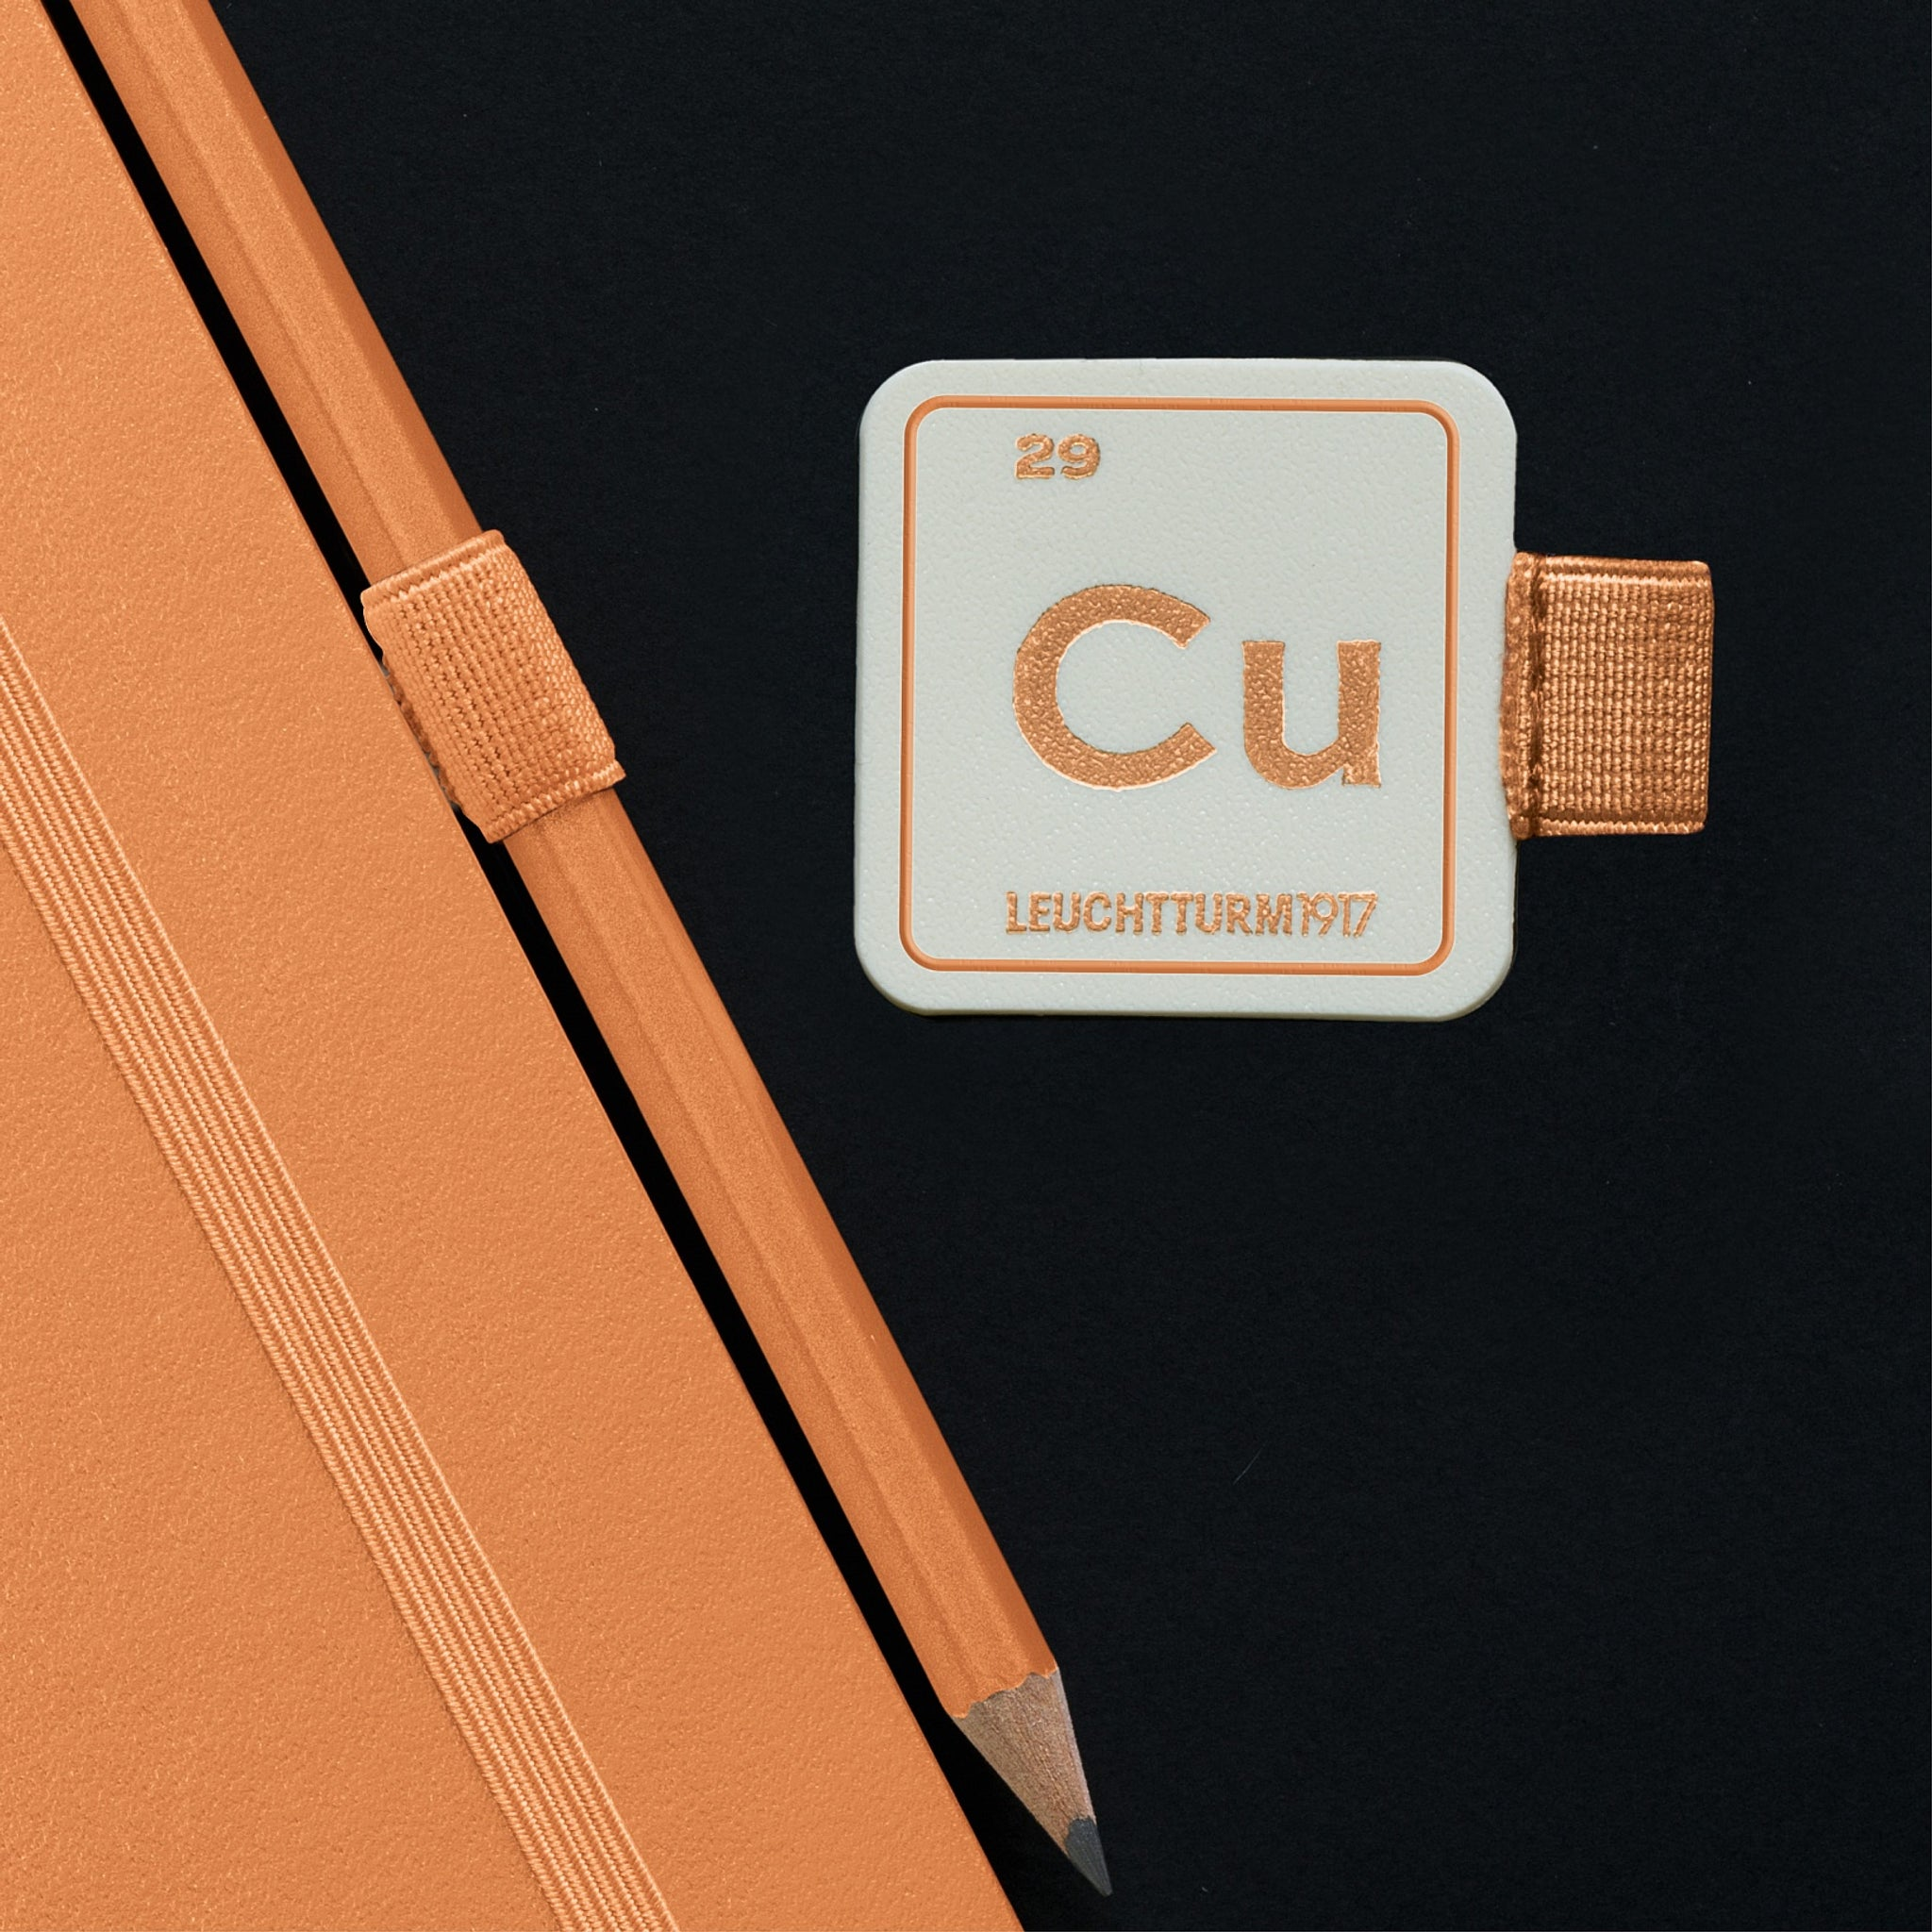 Leuchtturm1917 Metallic Edition Pen Loop Copper